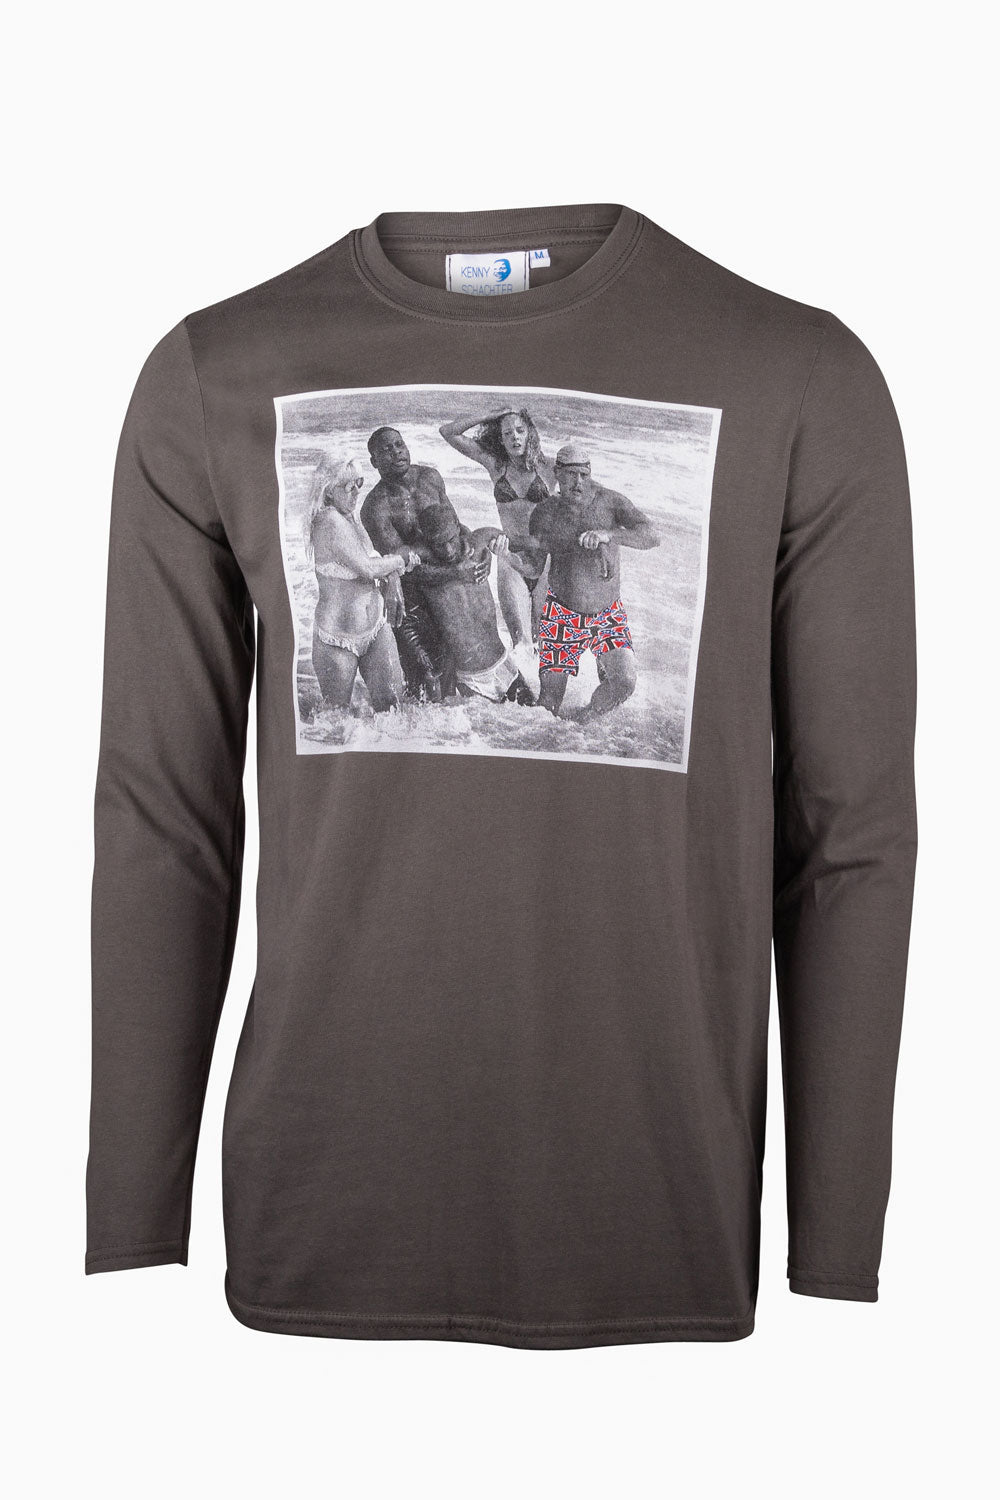 Kenny Schachter 'Christ After Hurricane' Long Sleeve Top